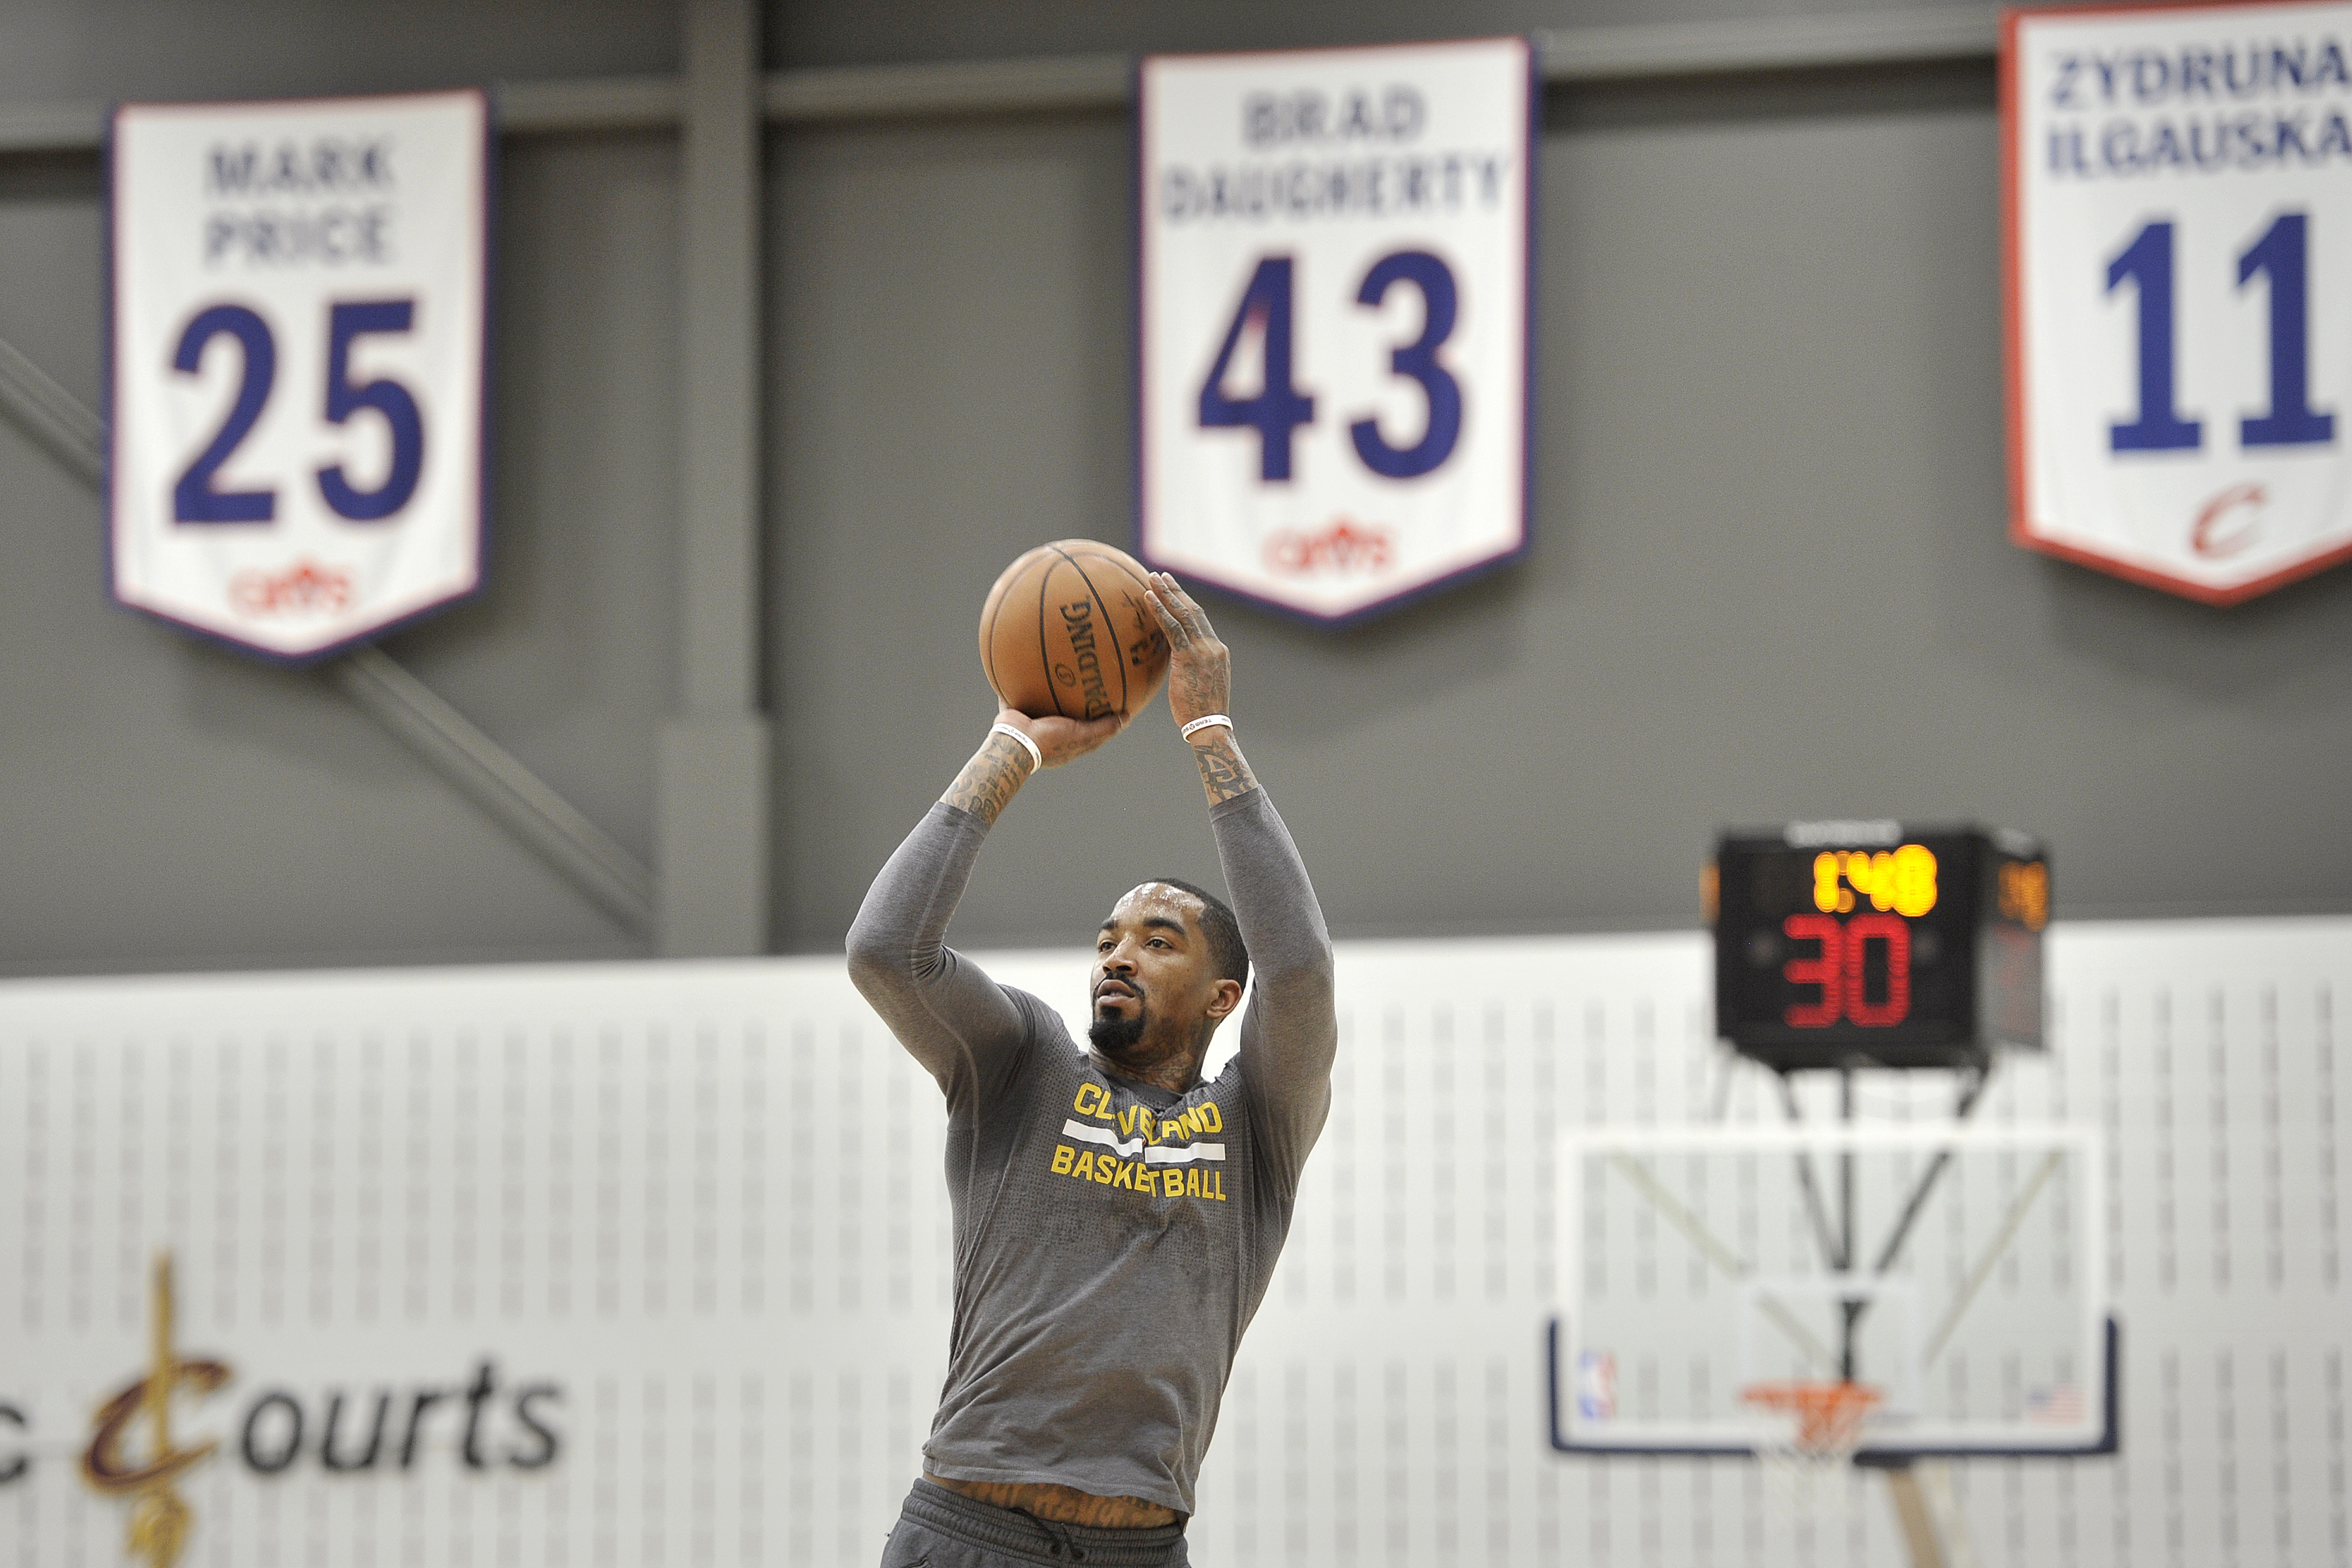 de23ad39041e J.R. Smith  5 of the Cleveland Cavaliers shoots the ball during an  all-access practice at The Cleveland Clinic Courts on April 28